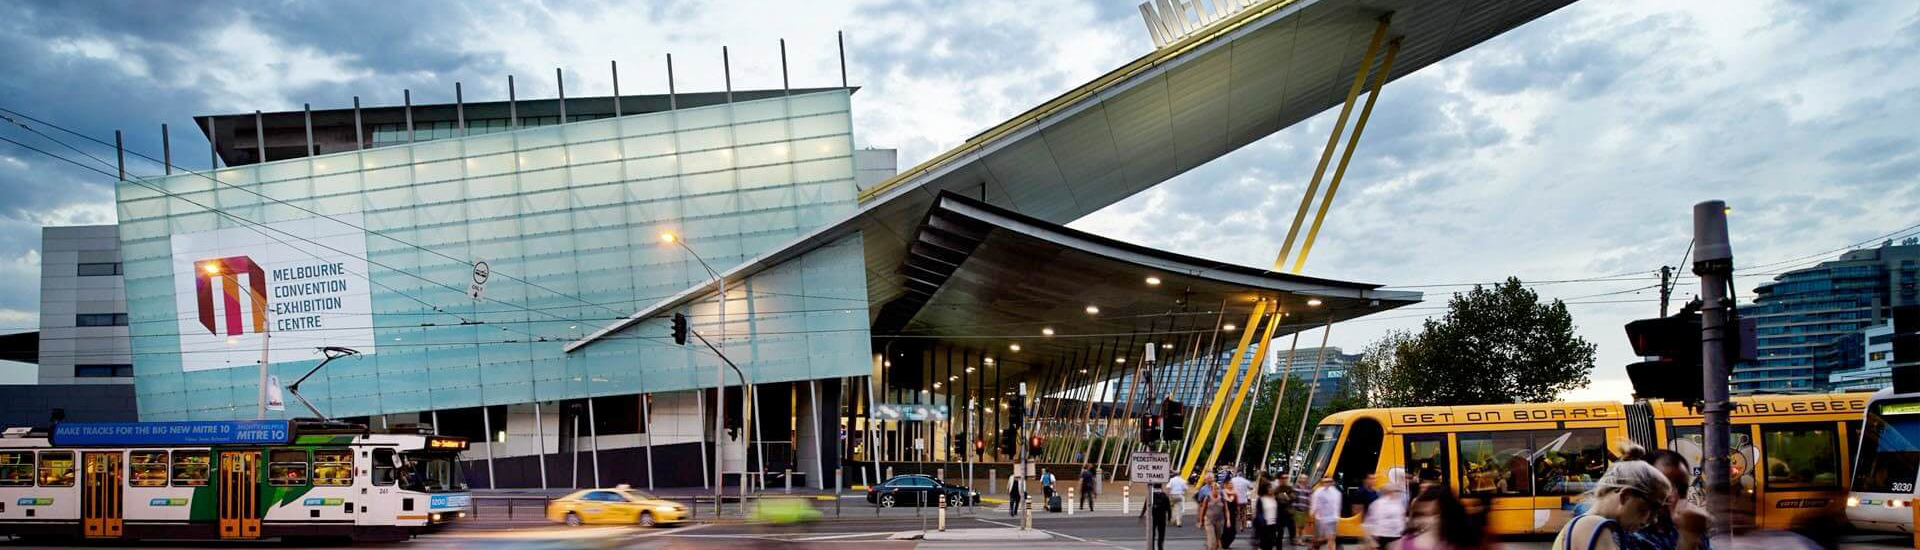 MCEC EXTERNAL - MEC Entrance - Photographic credit: Earl Carter